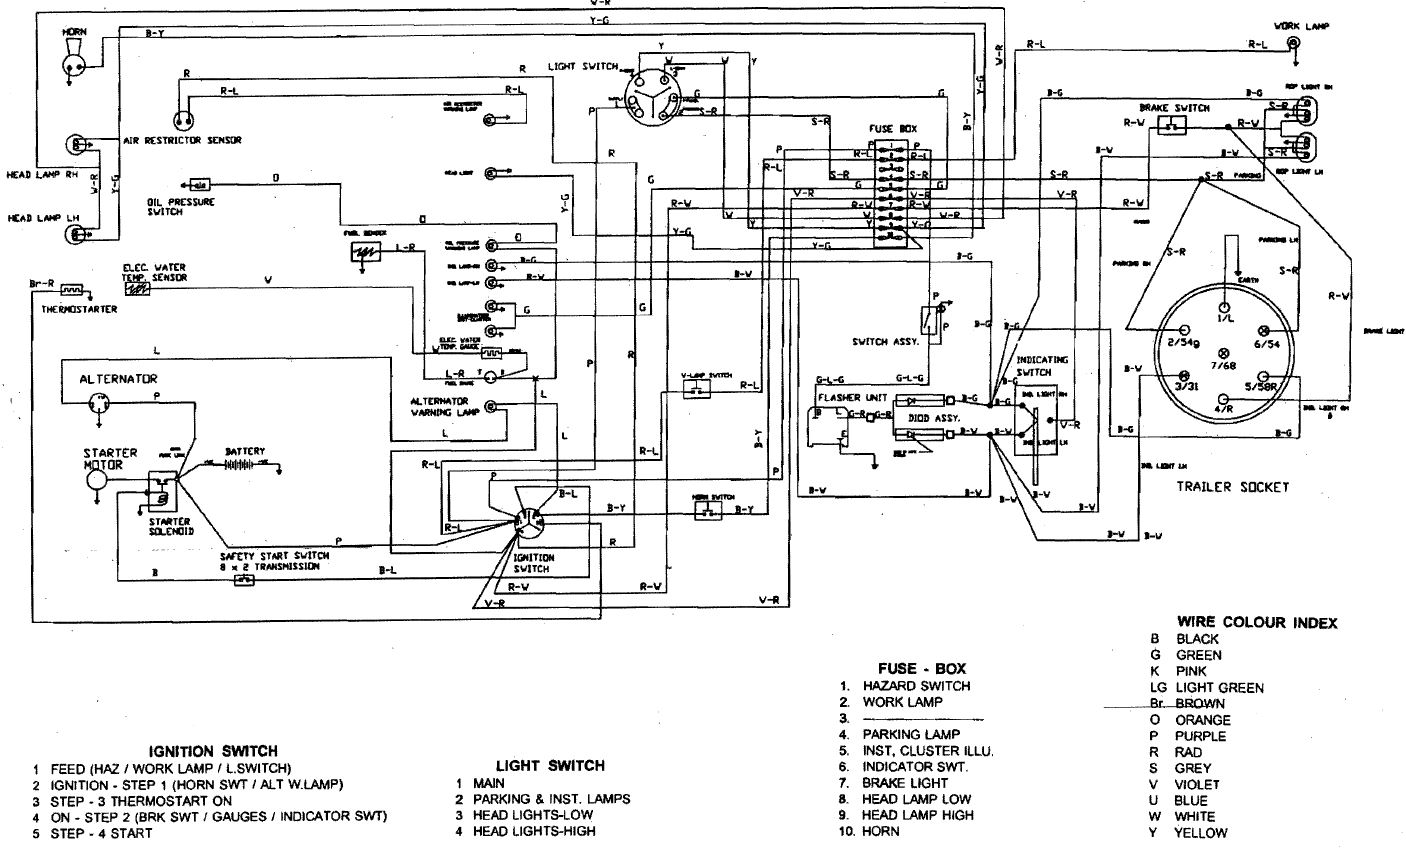 92556 murray switch wiring diagram